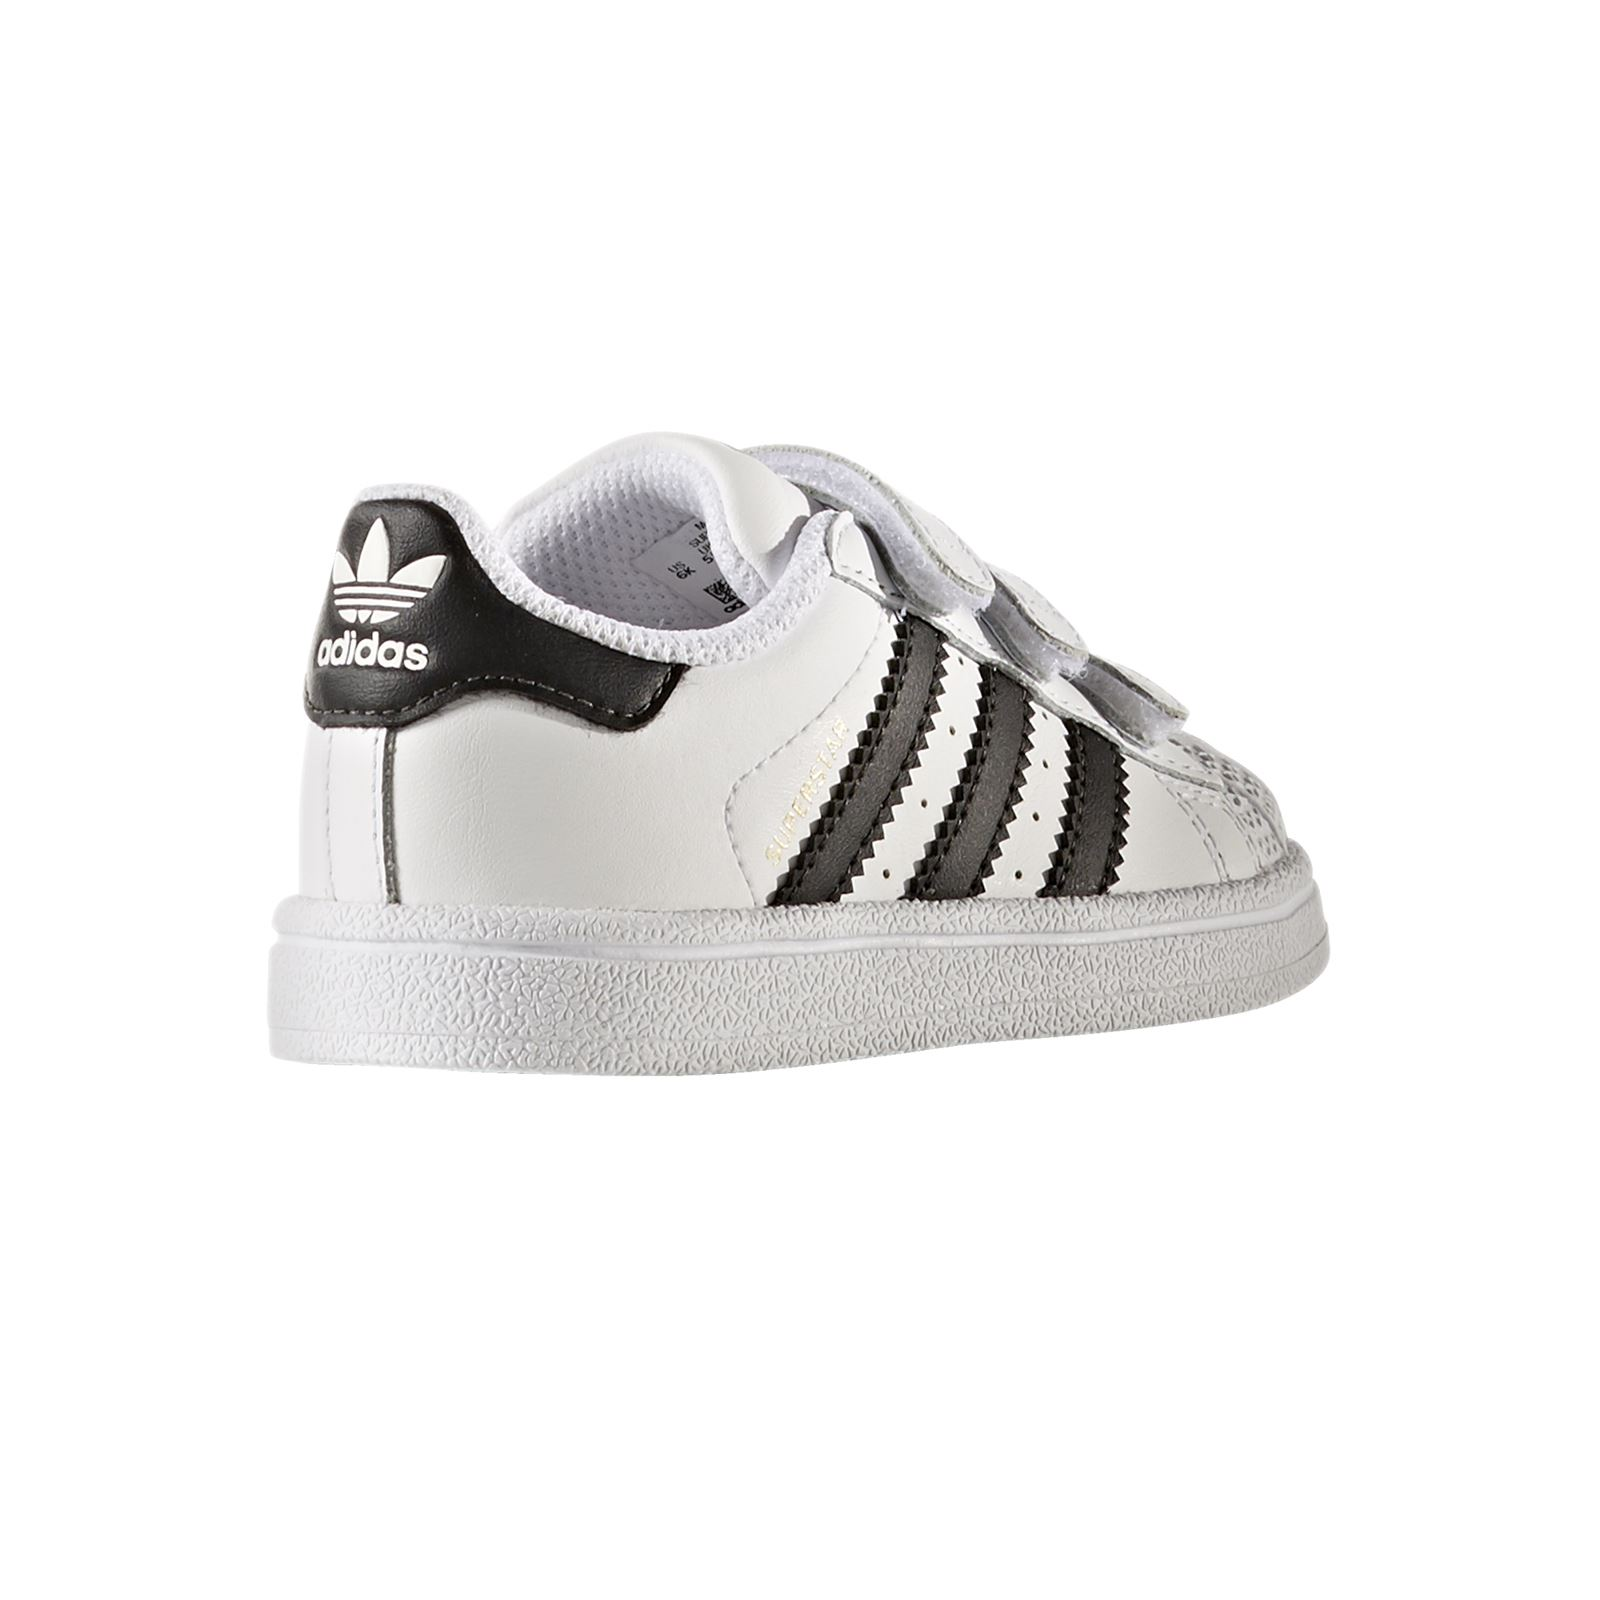 new product 97a4f d1cf2 ADIDAS ORIGINALS Superstar - Zapatillas de cuero - blanco